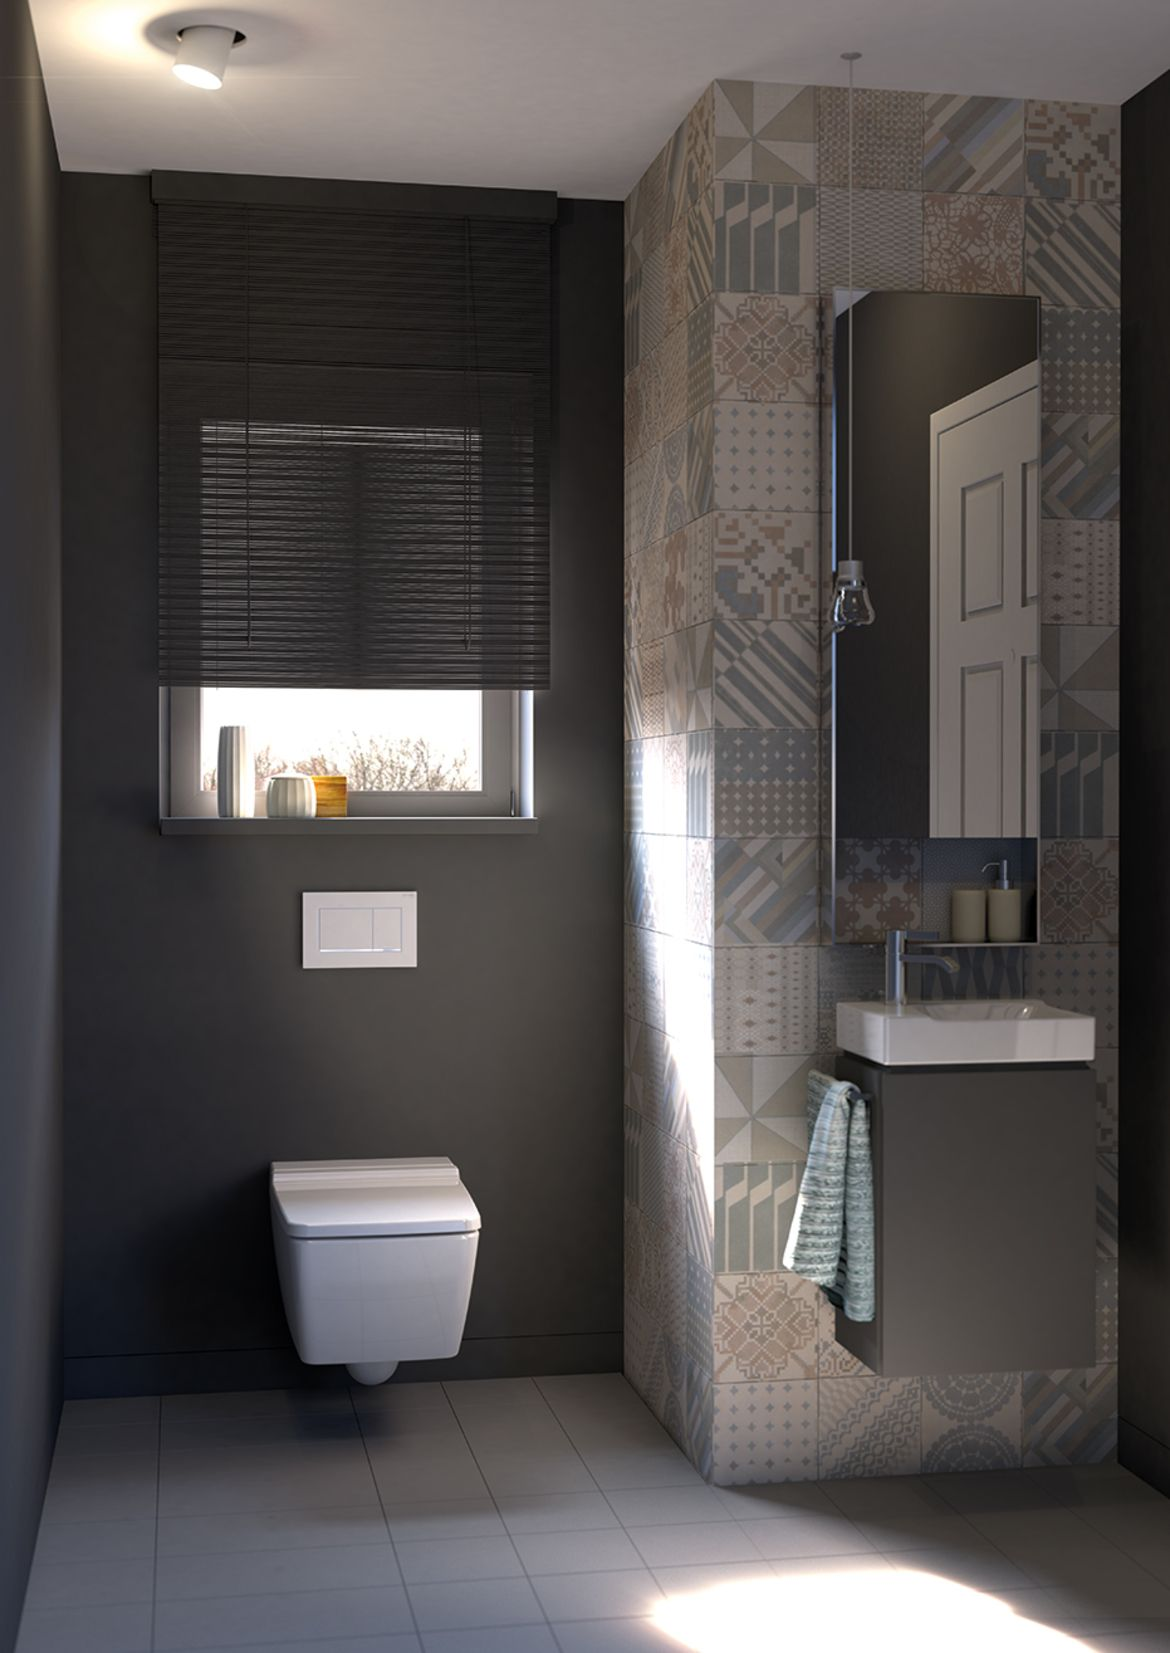 Geberit In Wall Toilet System In Pre Wall Construction With